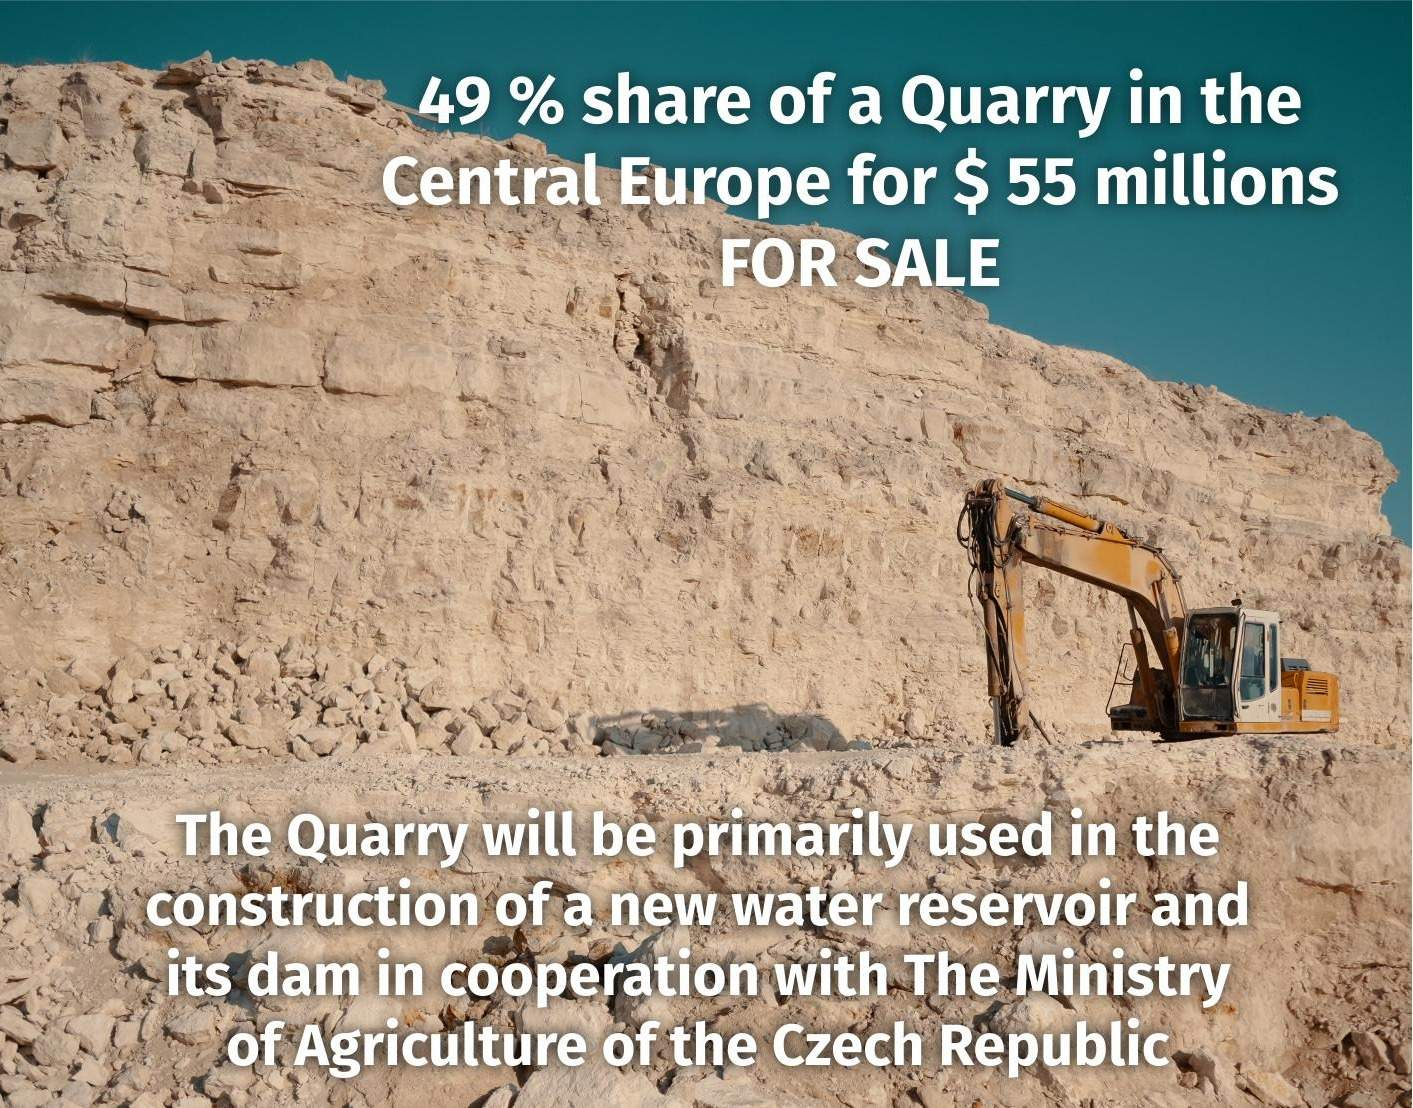 Quarry in the Central Europe